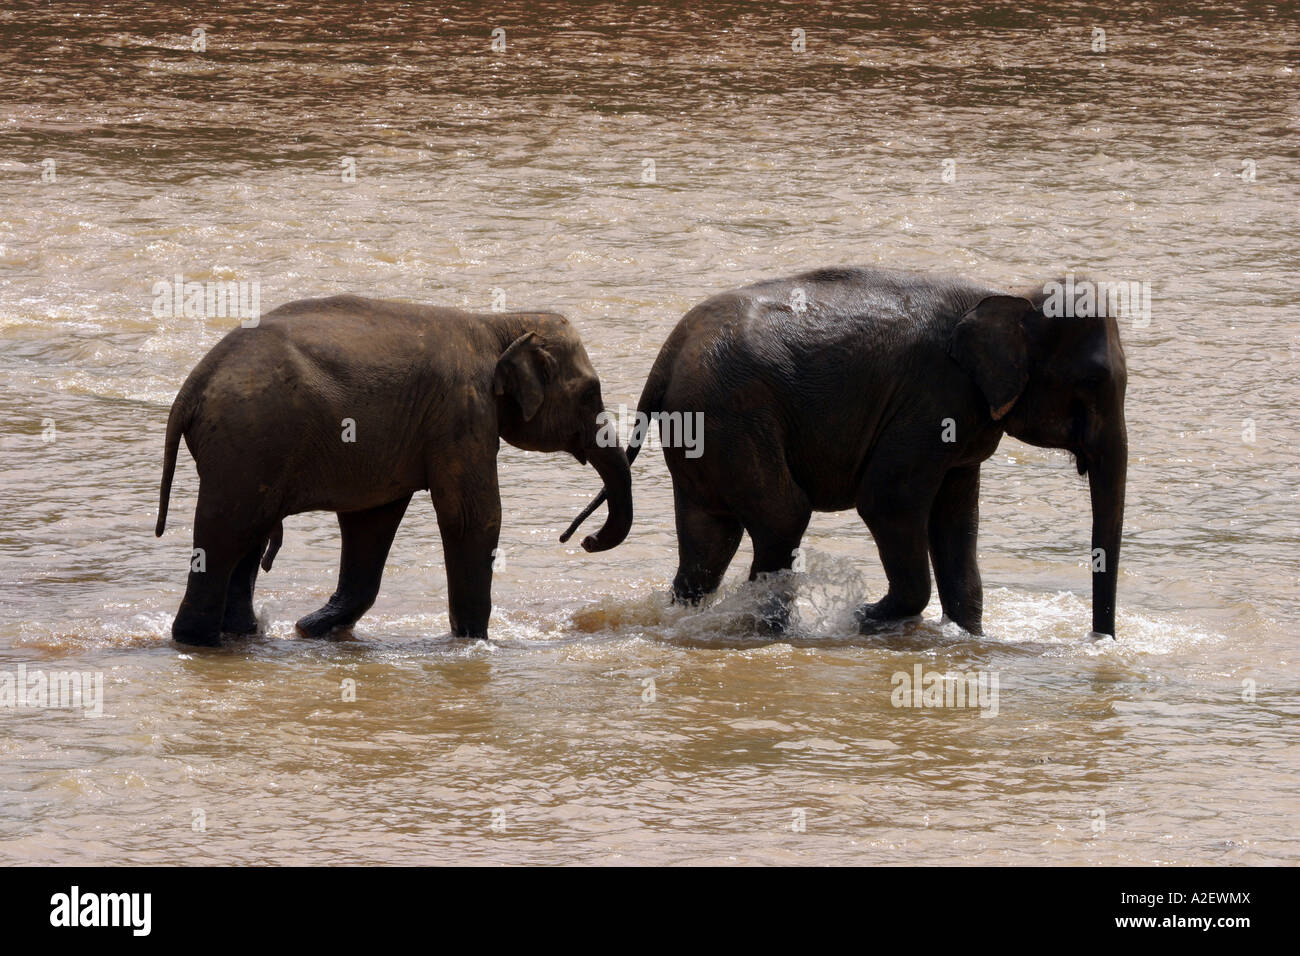 Sri Lanka elephants - male and female adult asian elephants in the Mahaweli Ganga river, Pinnawala, Sri Lanka, Asia Stock Photo